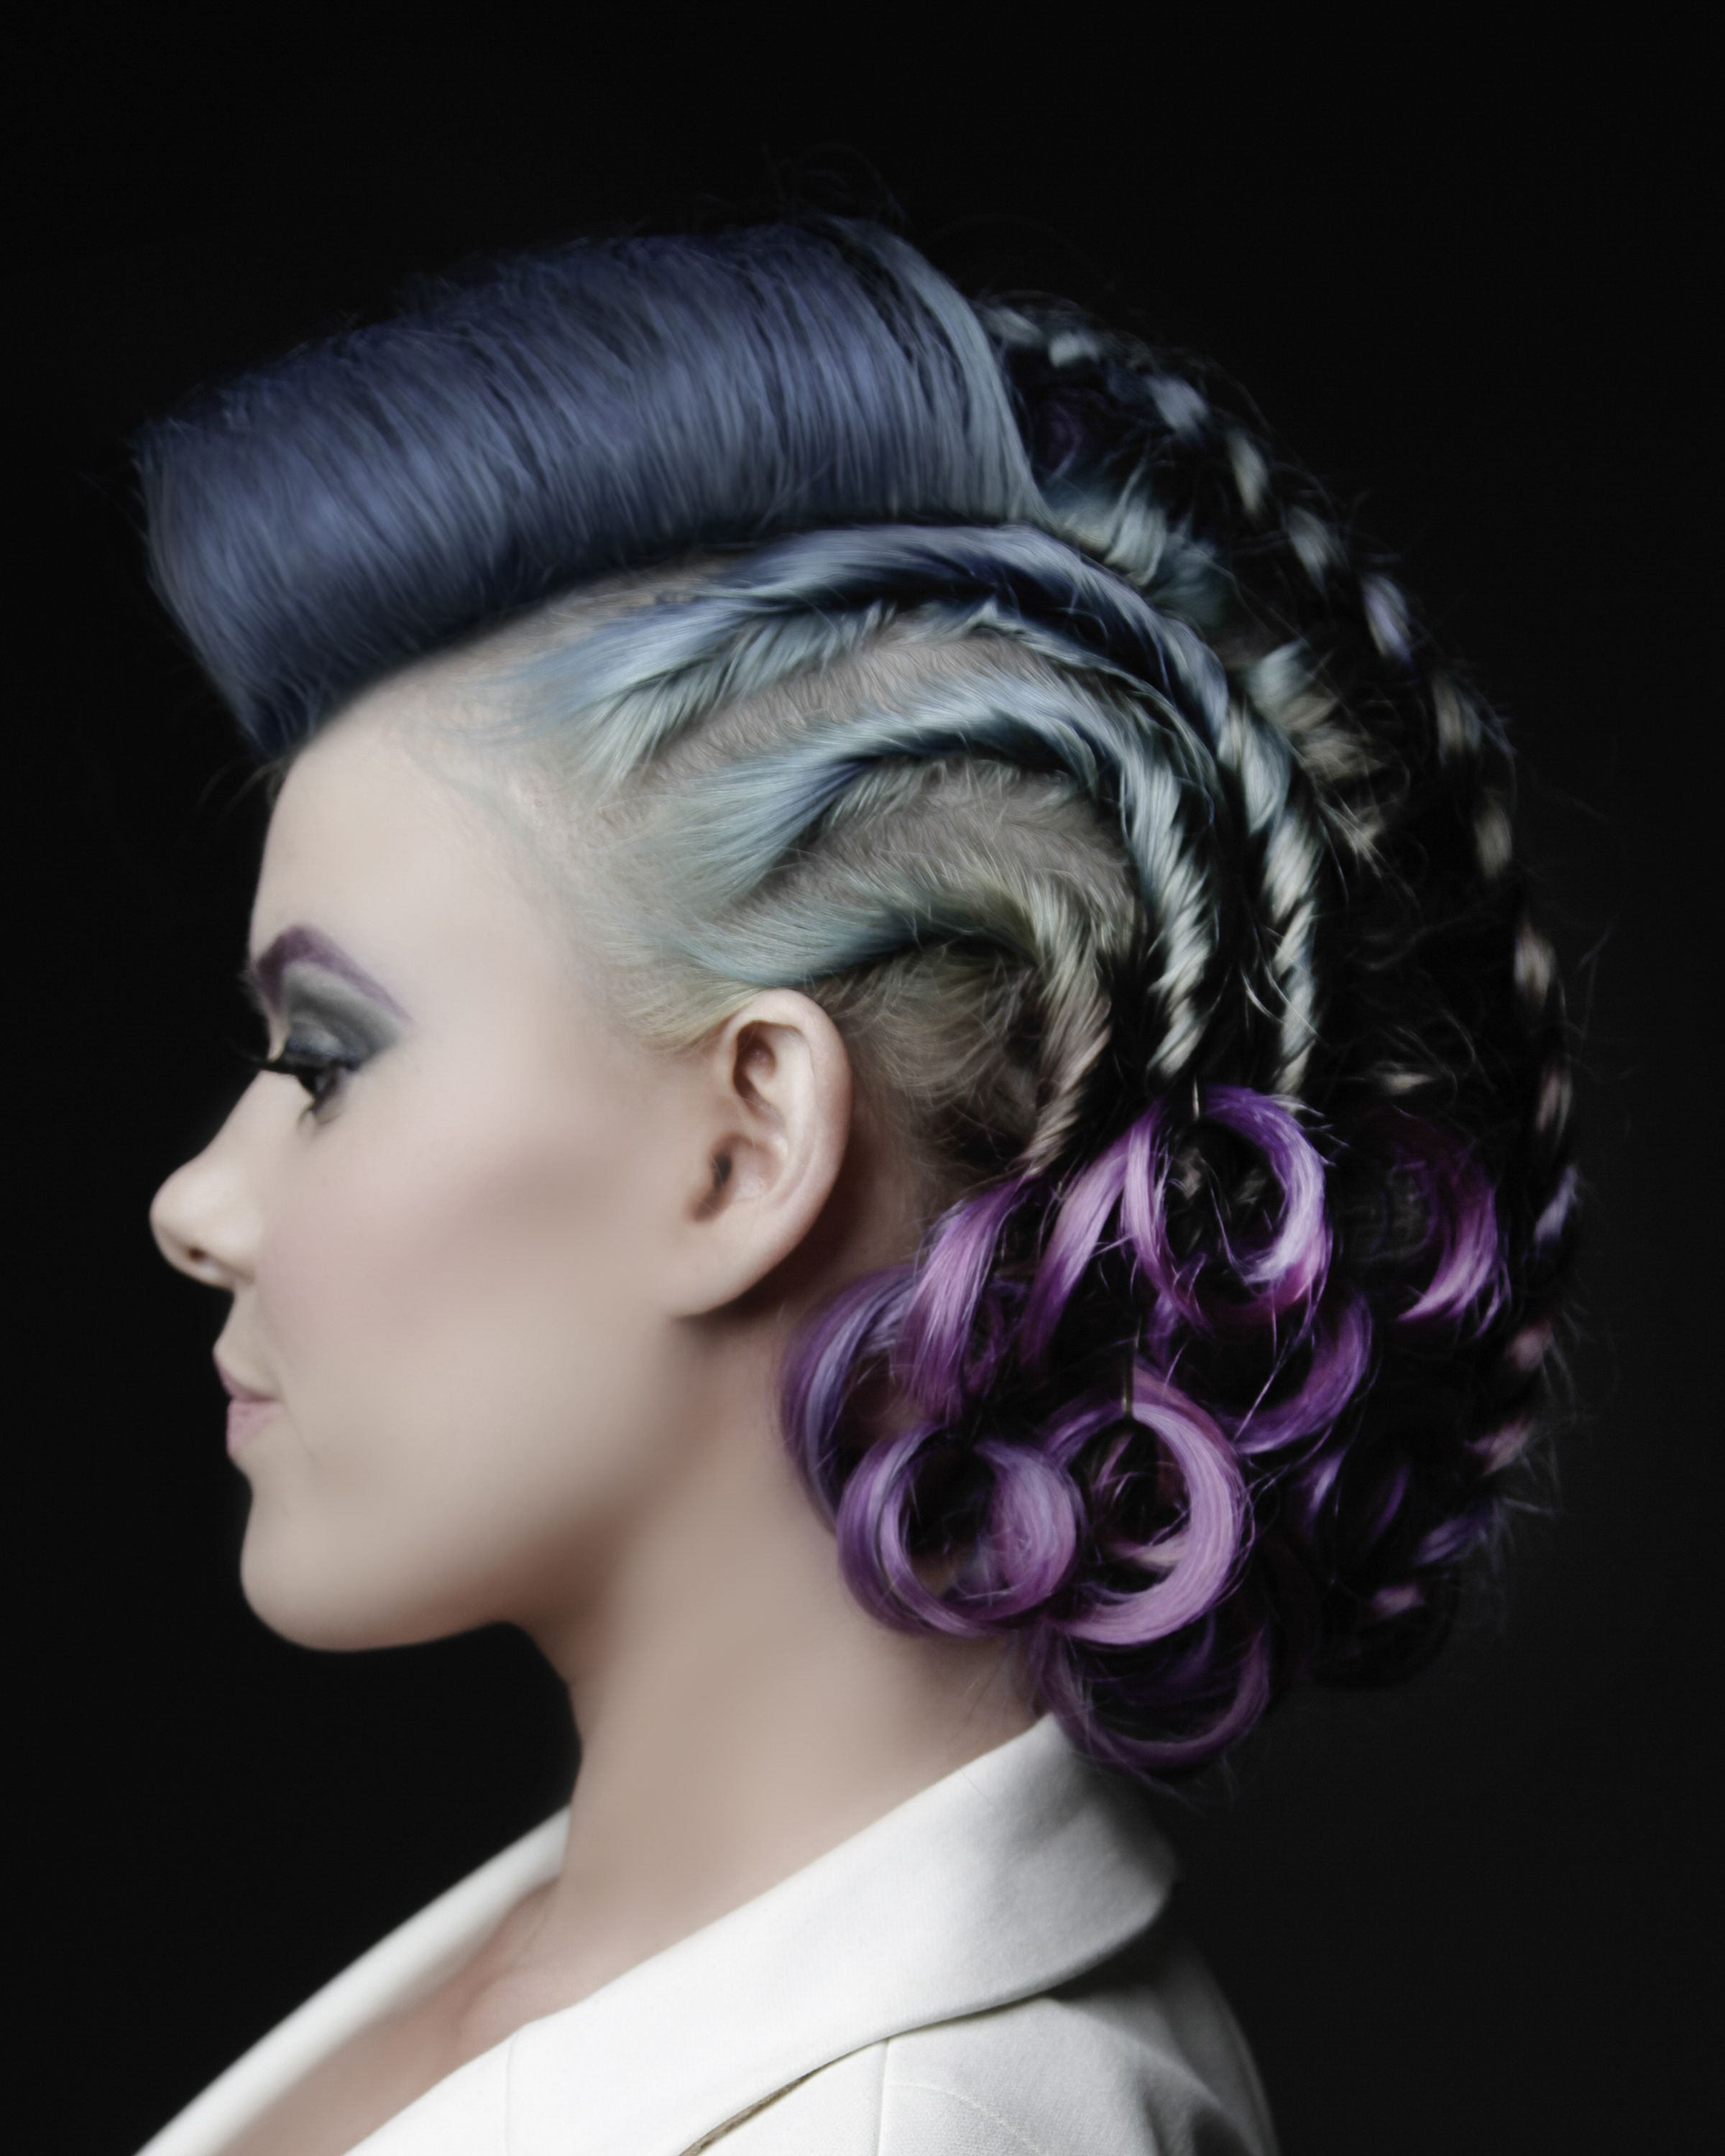 Styled By Students From Our Dallas Area Cosmetology School Winners